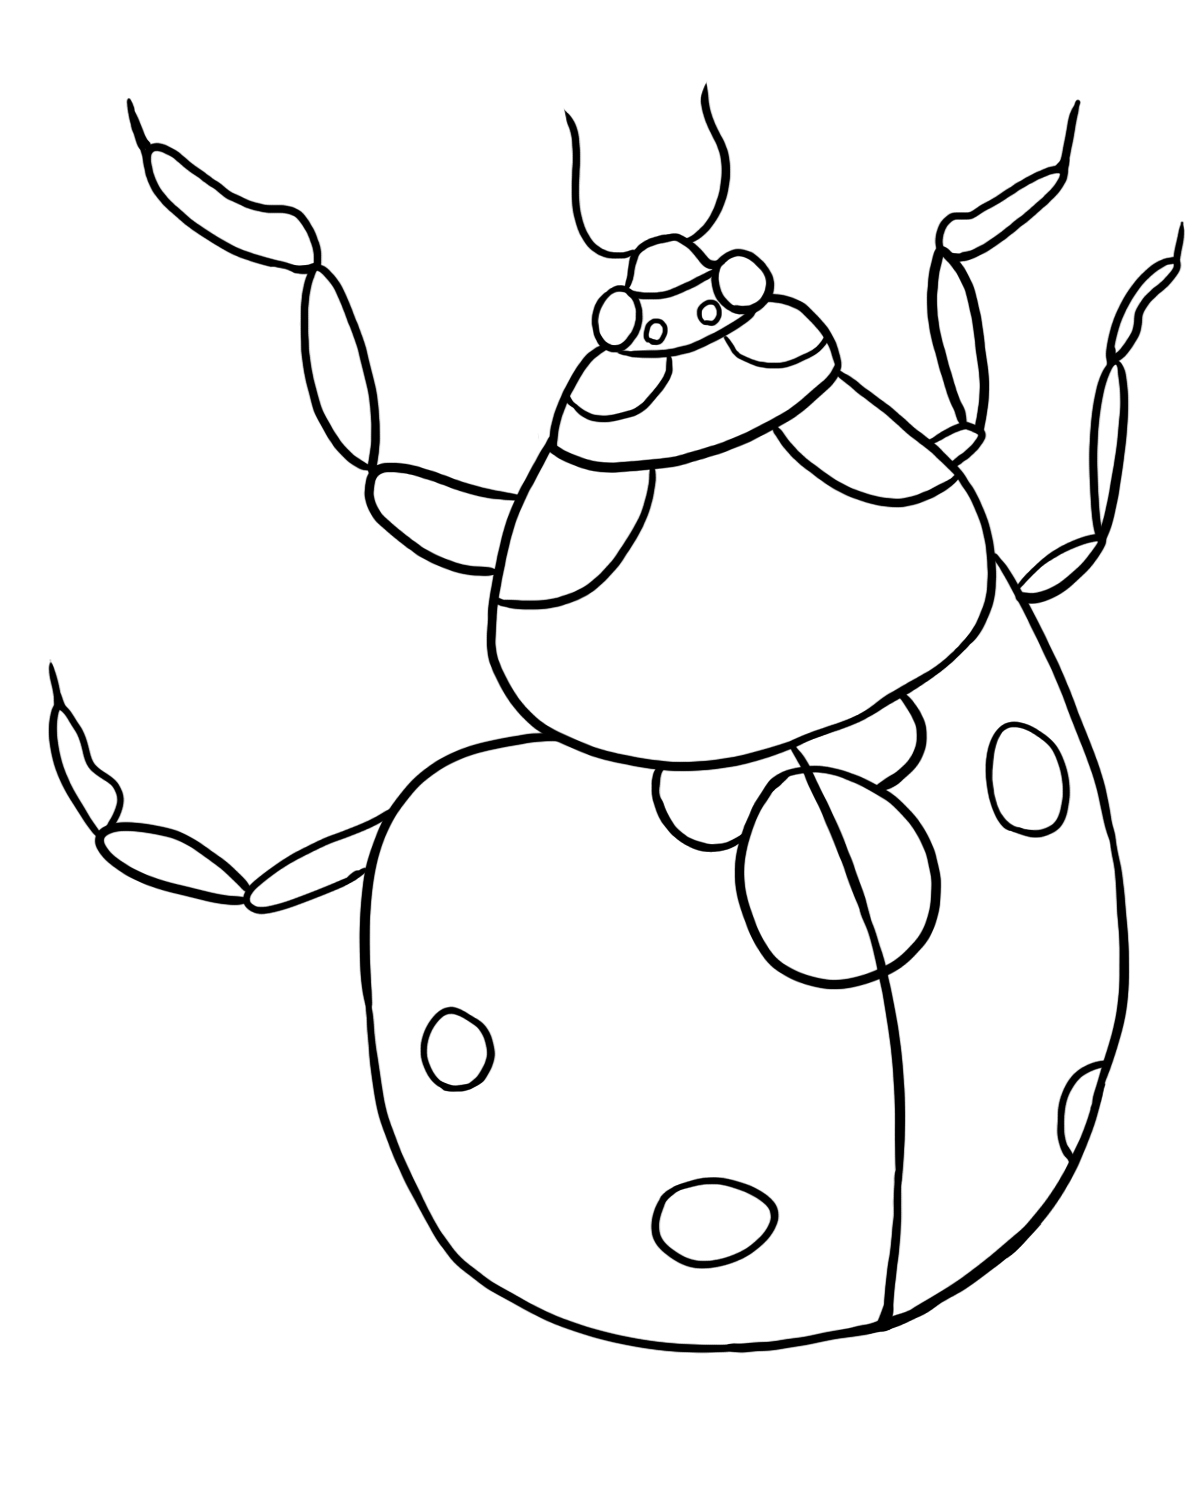 Coloring pages of ladybugs for kids - Free Printable Ladybug Coloring Pages